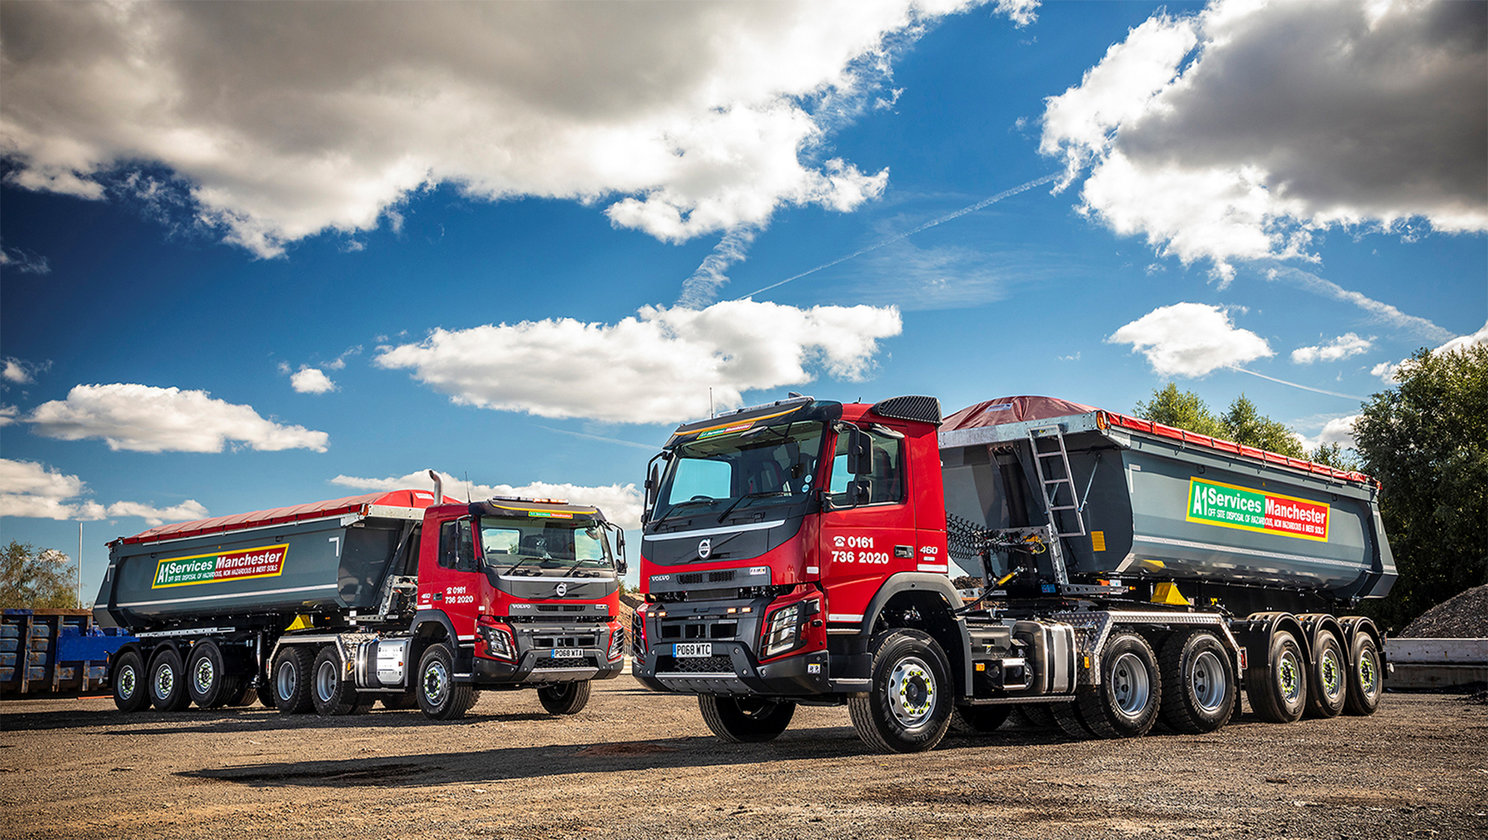 Two new Volvo FMX tractor units reach new heights for A1 Services (Manchester) Limited